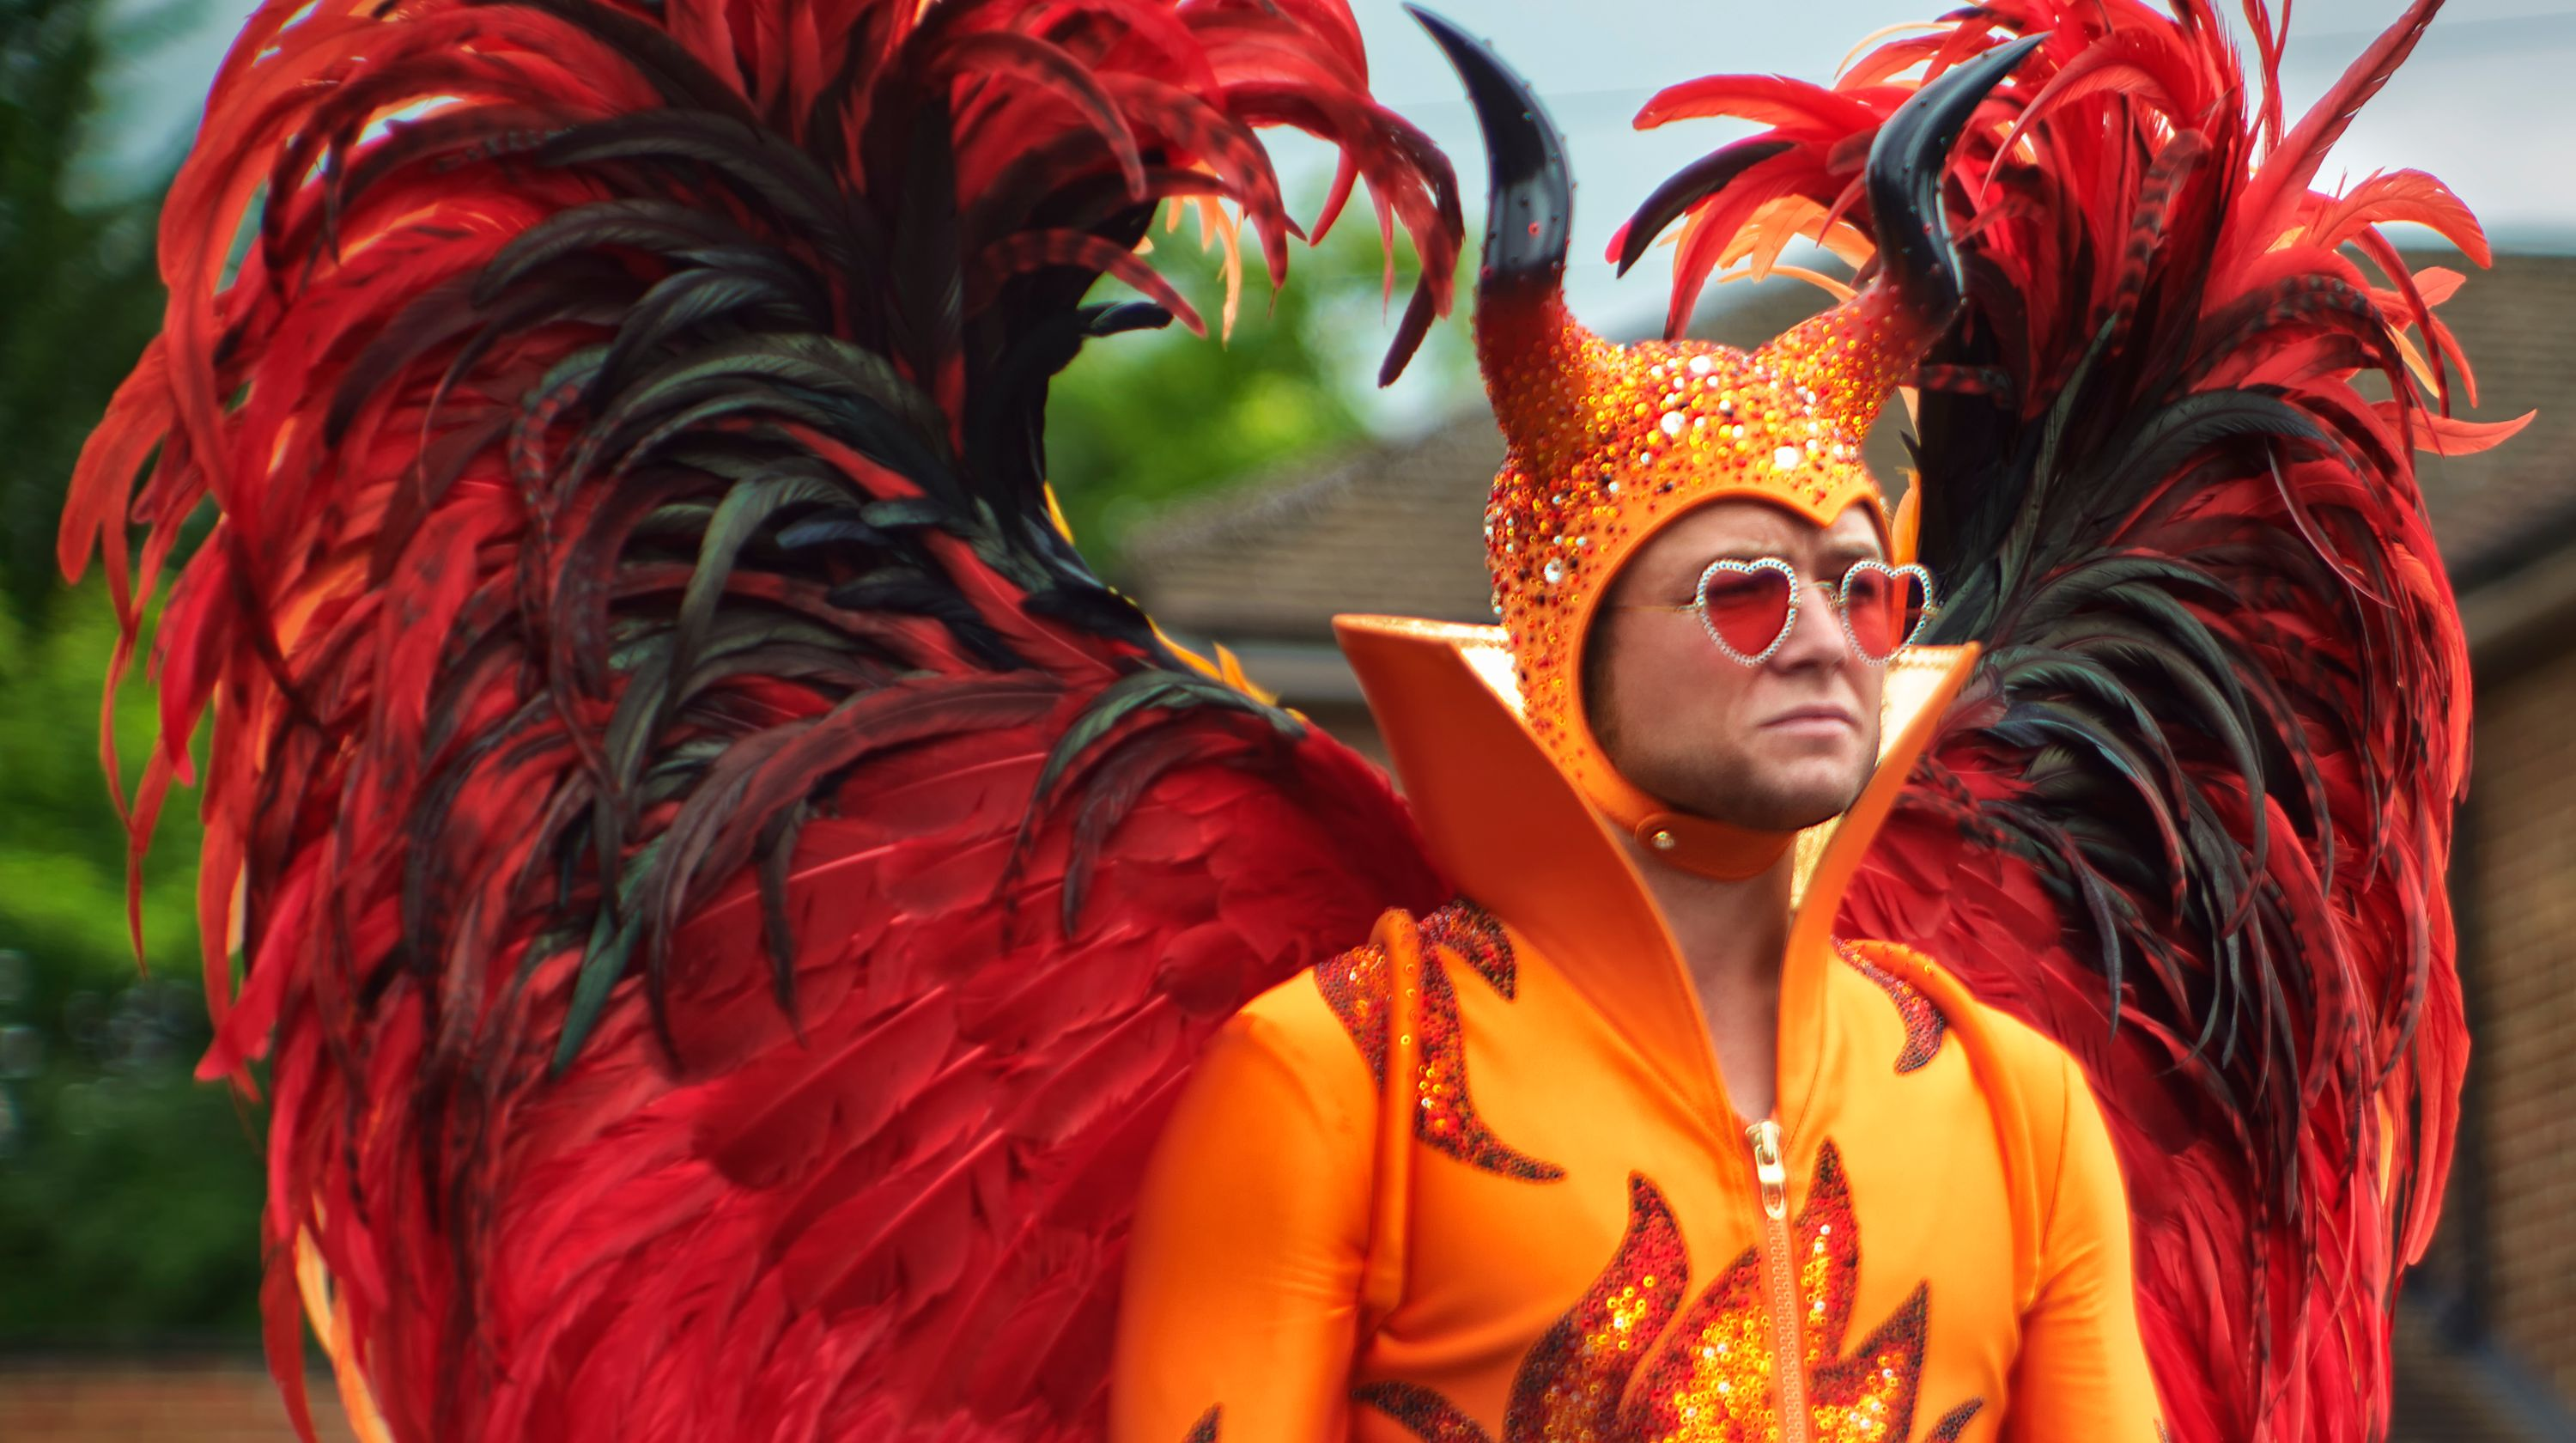 taron egerton in rocketman hit at cannes